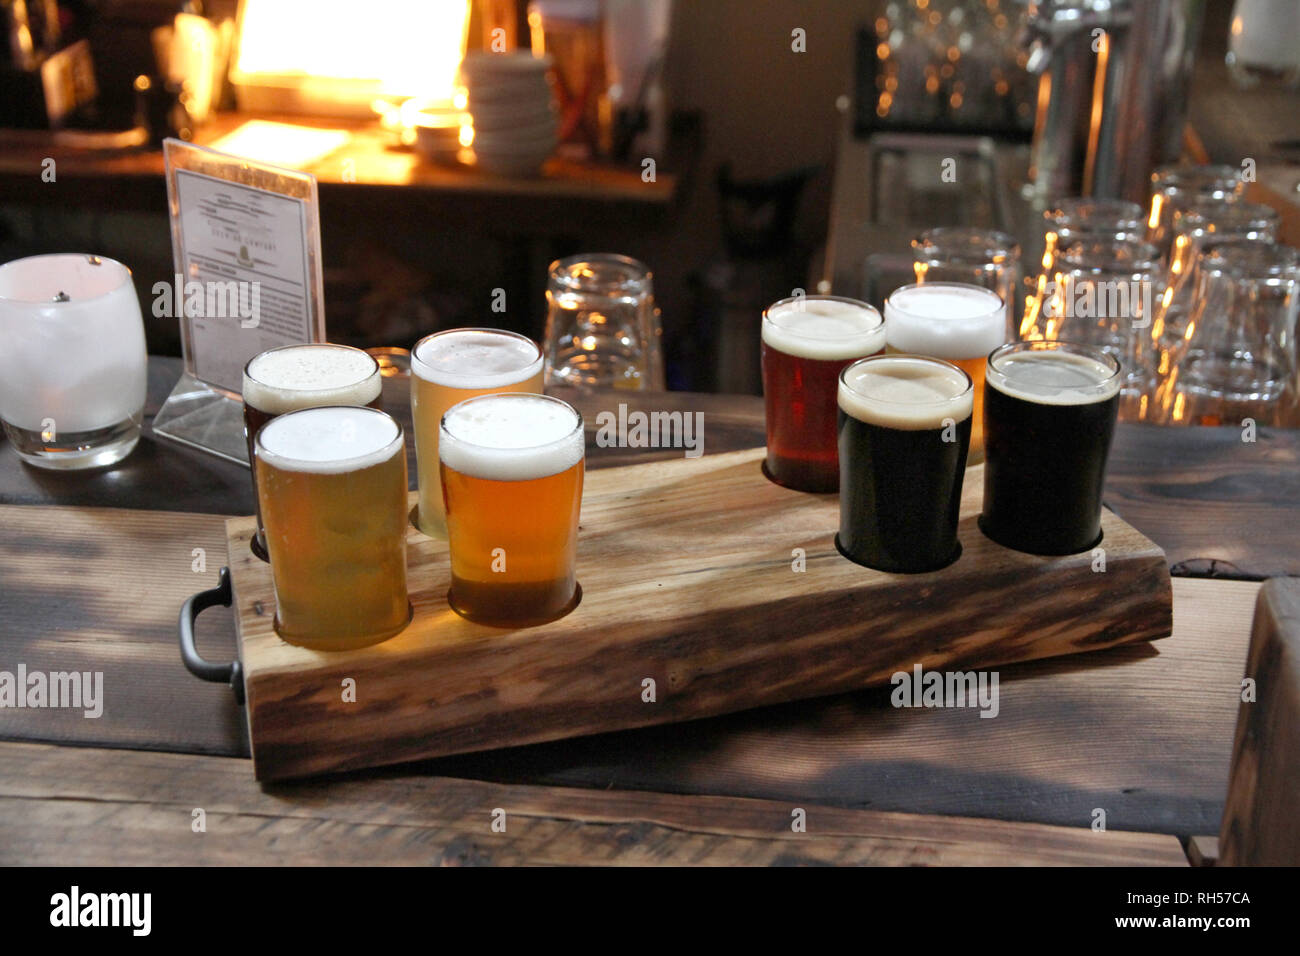 Eight beer samples in a burned wood holder on a burned wood table in a warm room. Stock Photo